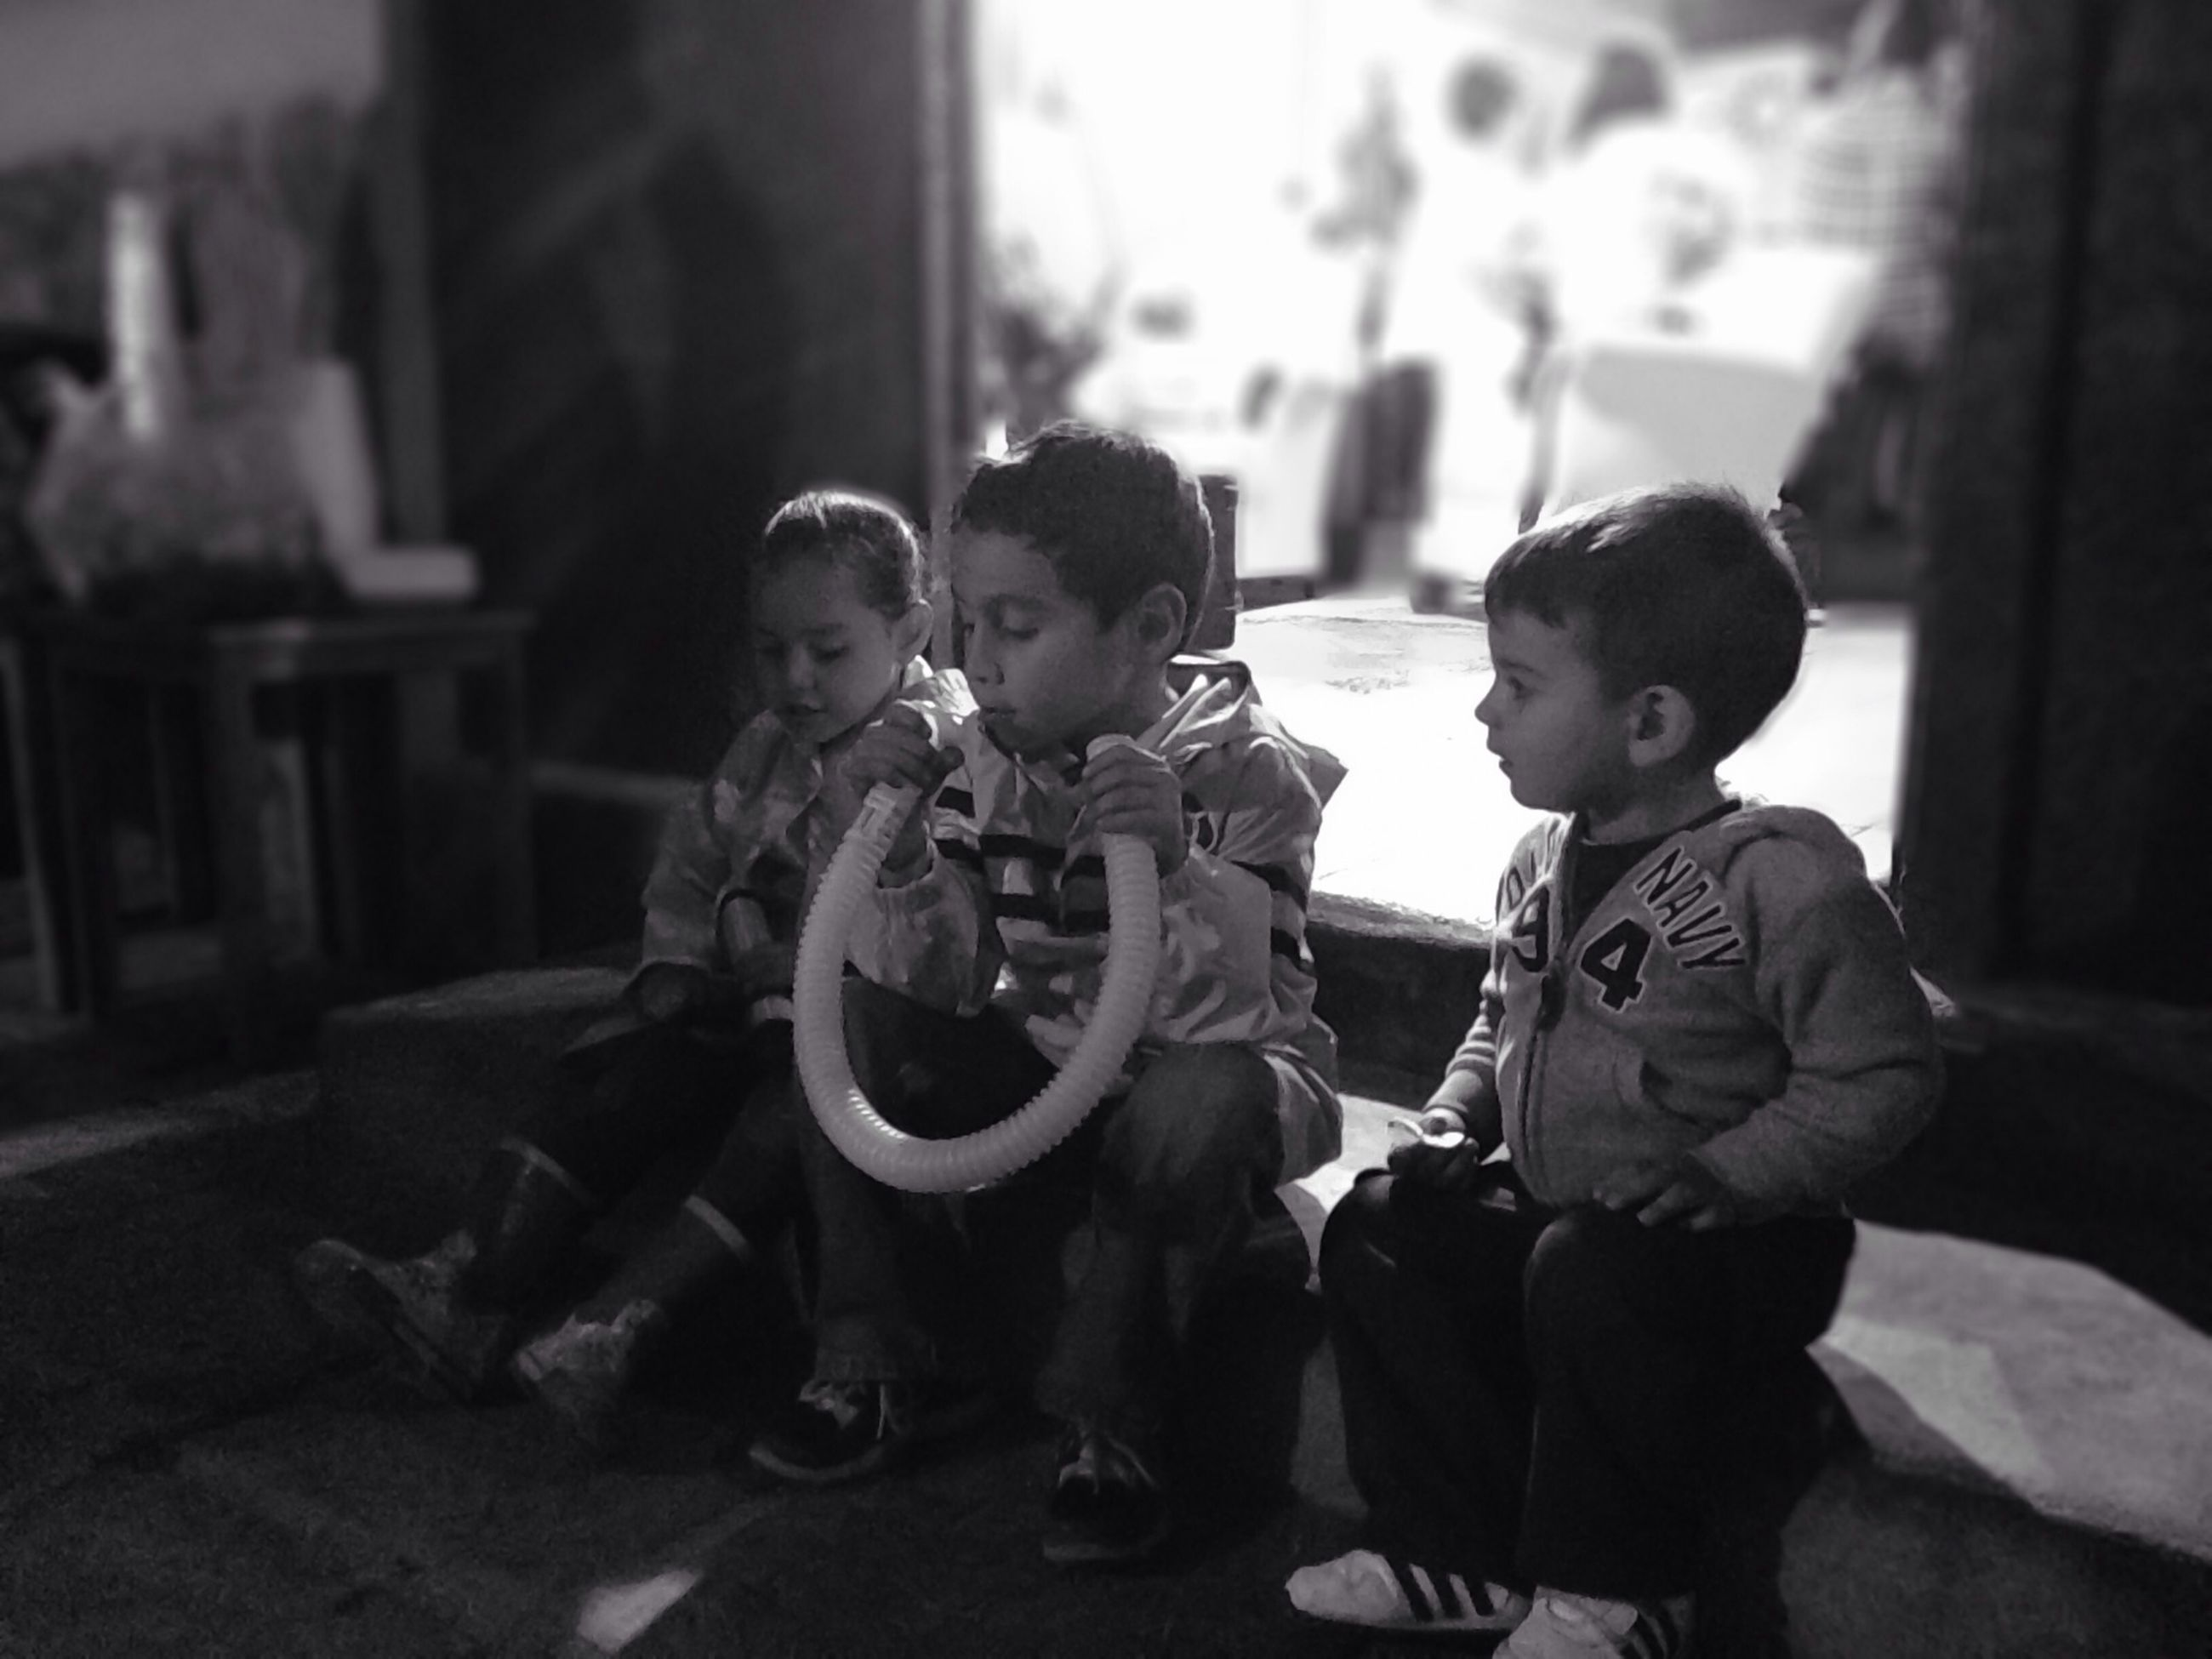 childhood, boys, lifestyles, elementary age, leisure activity, casual clothing, indoors, person, sitting, innocence, togetherness, focus on foreground, bonding, full length, cute, men, girls